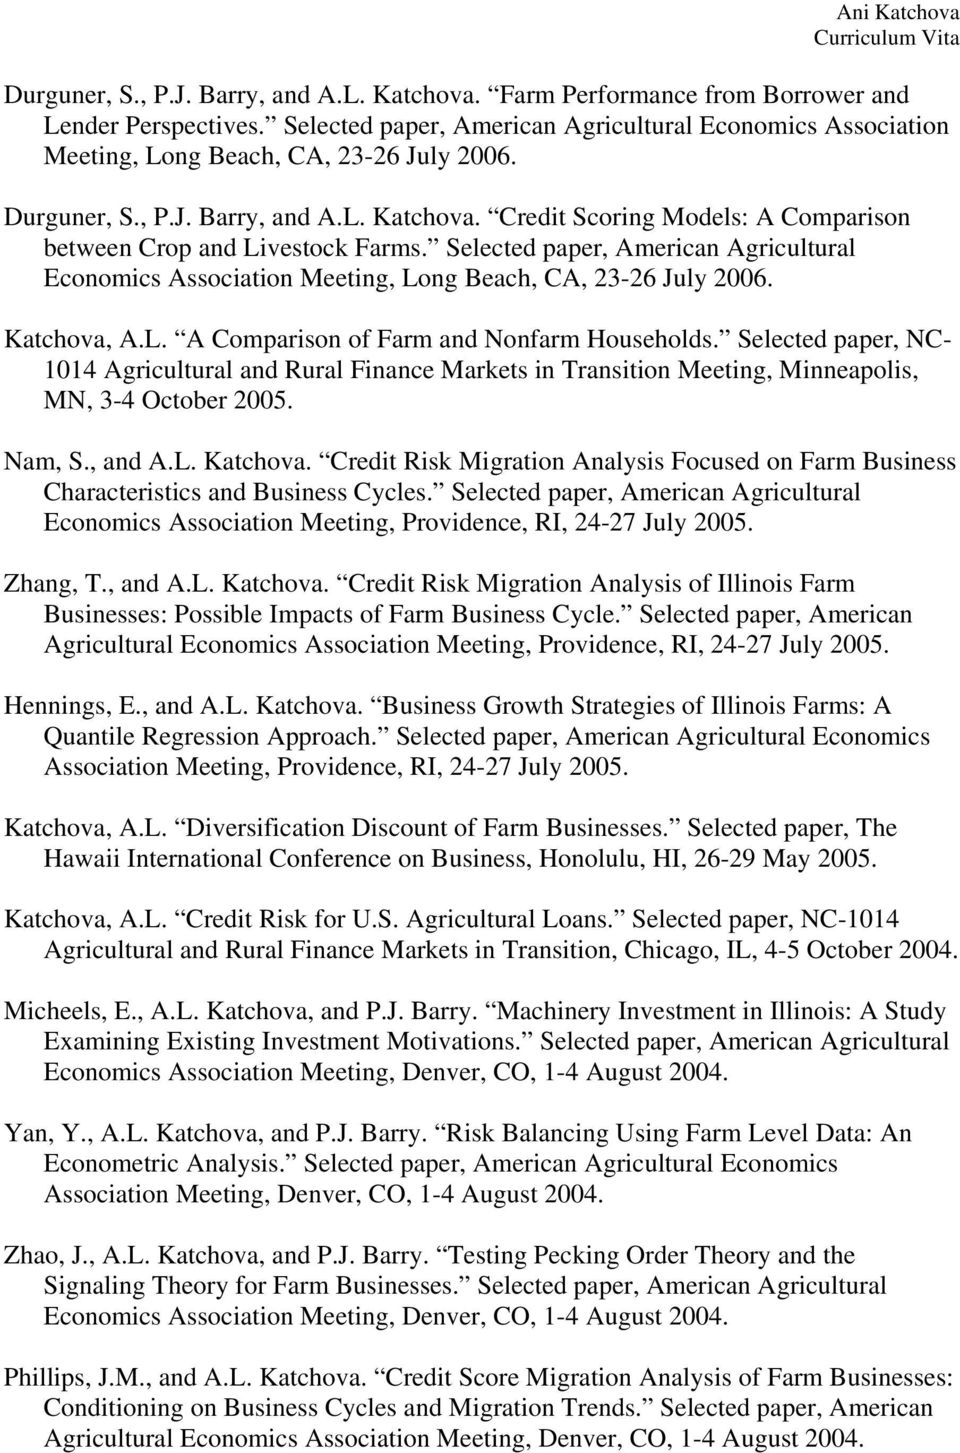 Credit Scoring Models: A Comparison between Crop and Livestock Farms. Selected paper, American Agricultural Economics Association Meeting, Long Beach, CA, 23-26 July 2006. Katchova, A.L. A Comparison of Farm and Nonfarm Households.